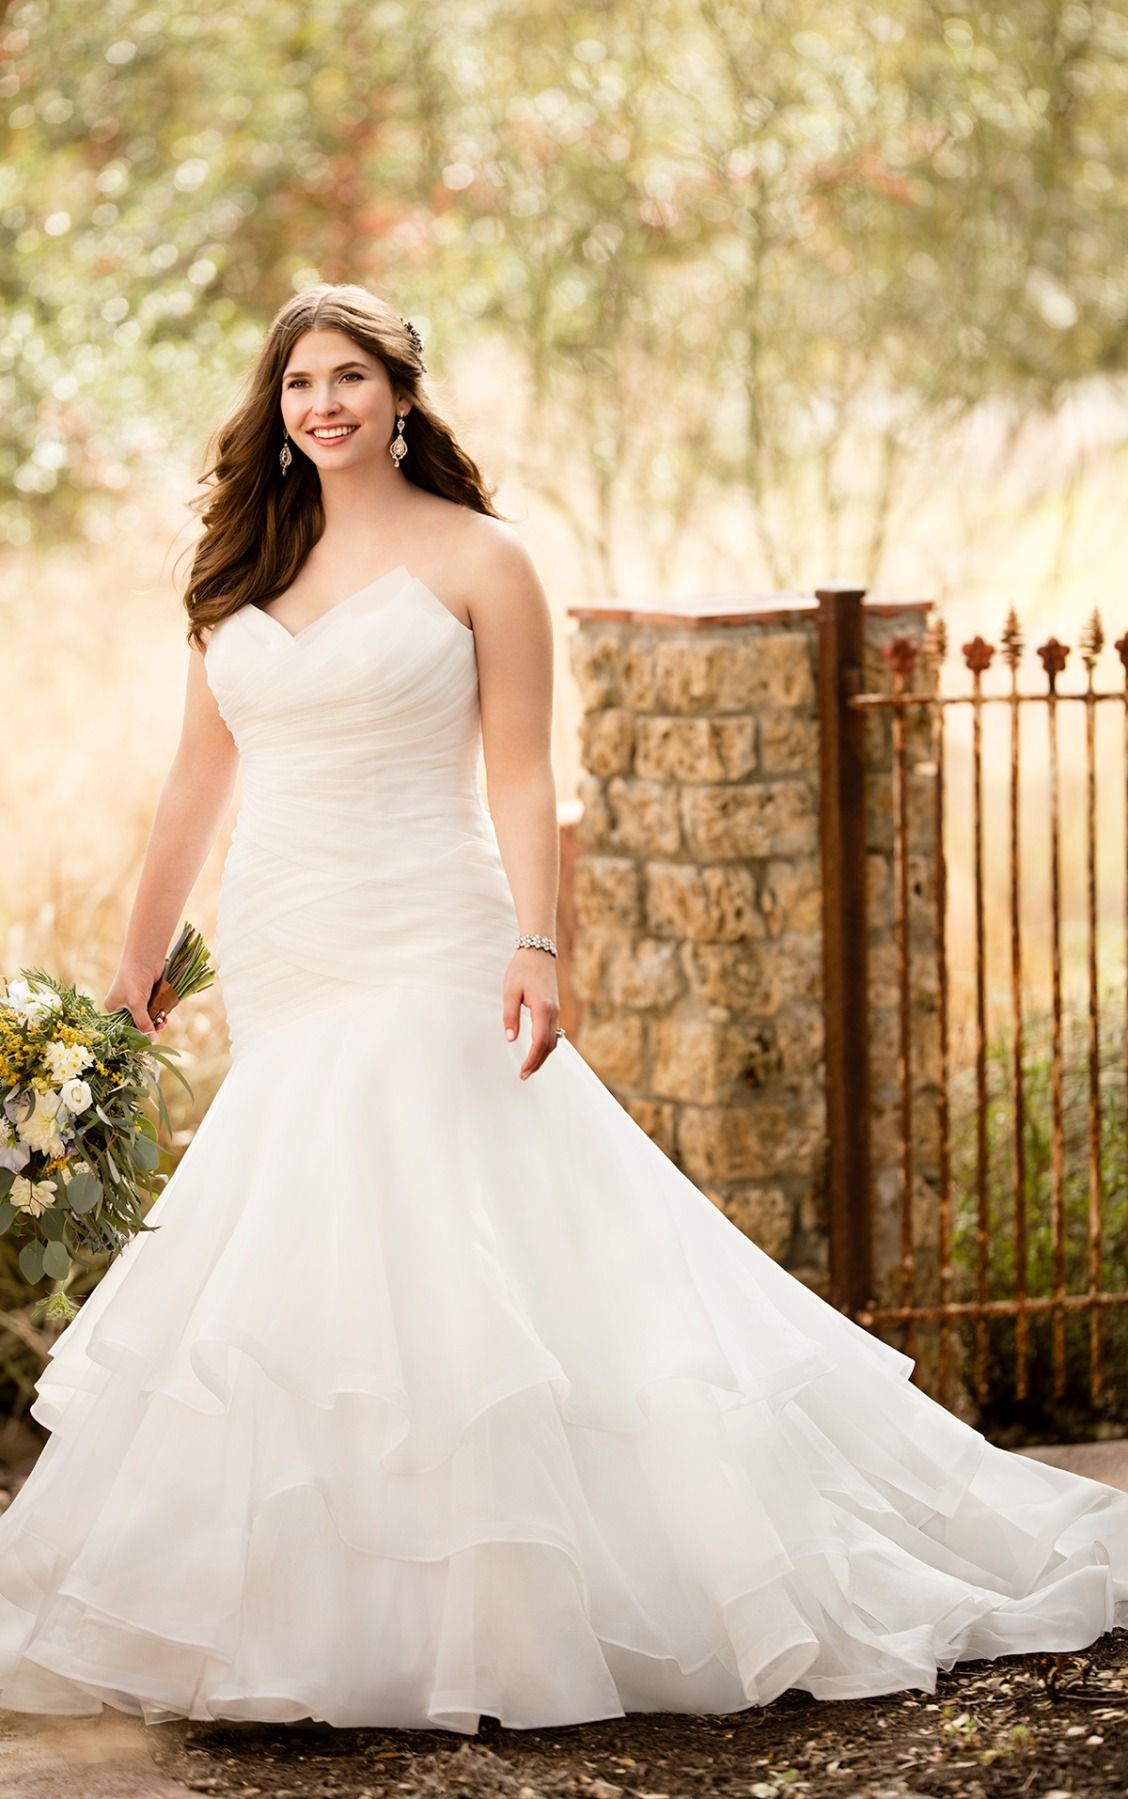 Wedding Gowns | Chapel train, Bridal gowns and Wedding dress